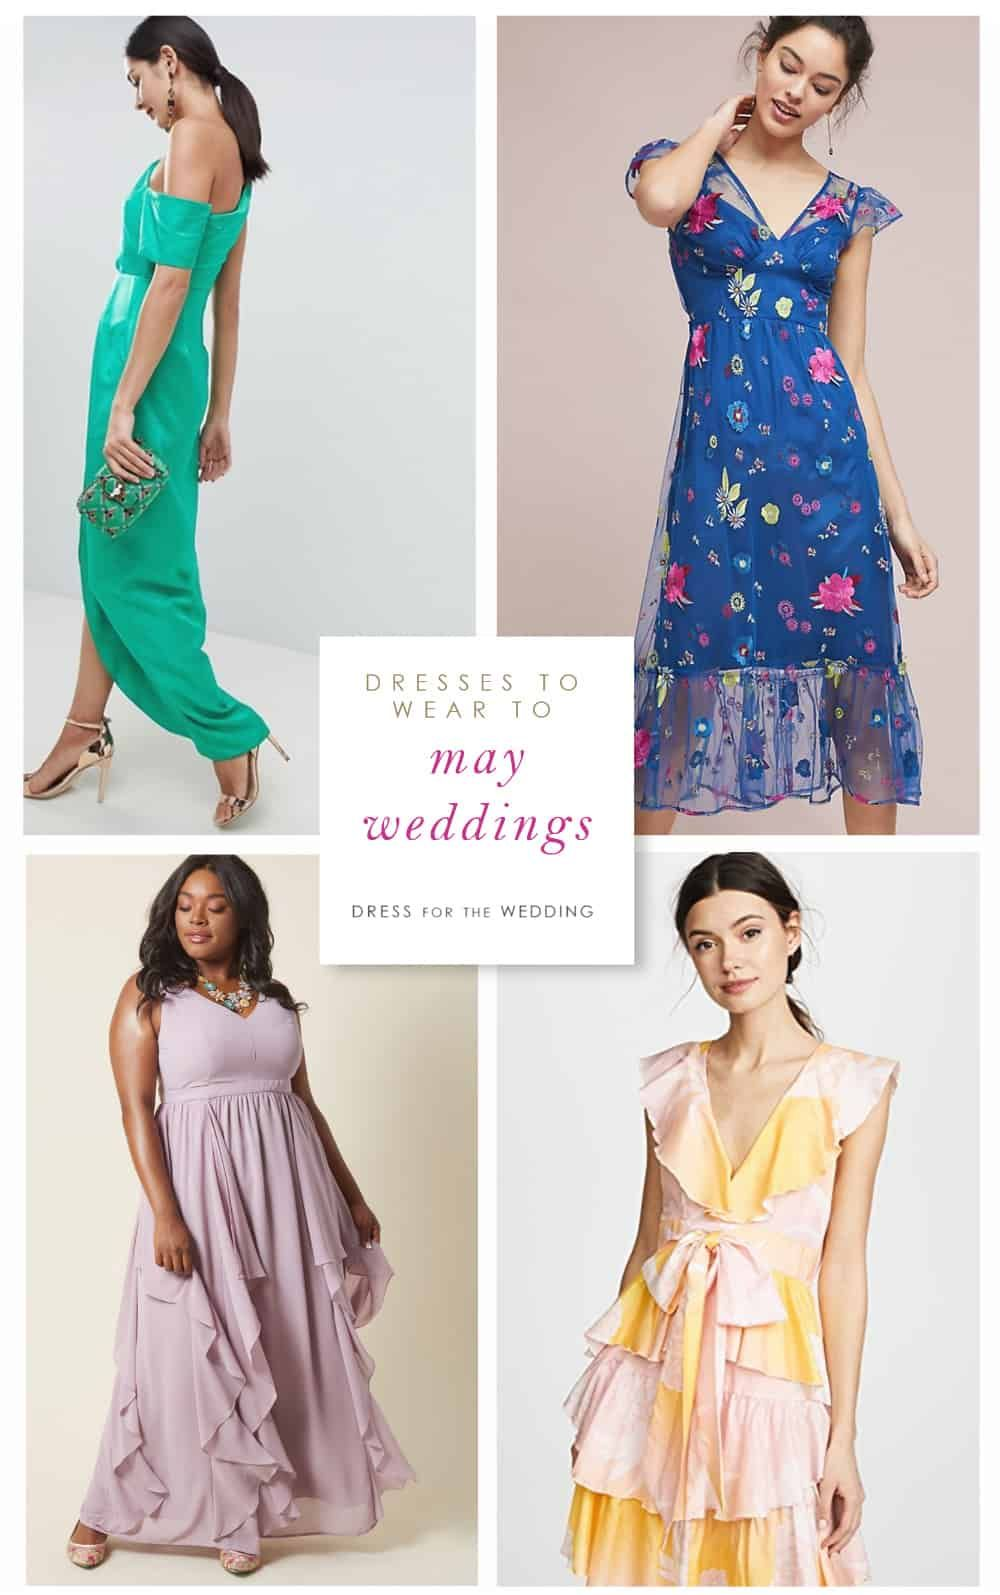 The Best Pring Wedding Outfits Start With These Pretty Dresses To Wear To May 2018 Weddings Cute Wedding Guest Dresses Pretty Dresses Wedding Guest Outfit